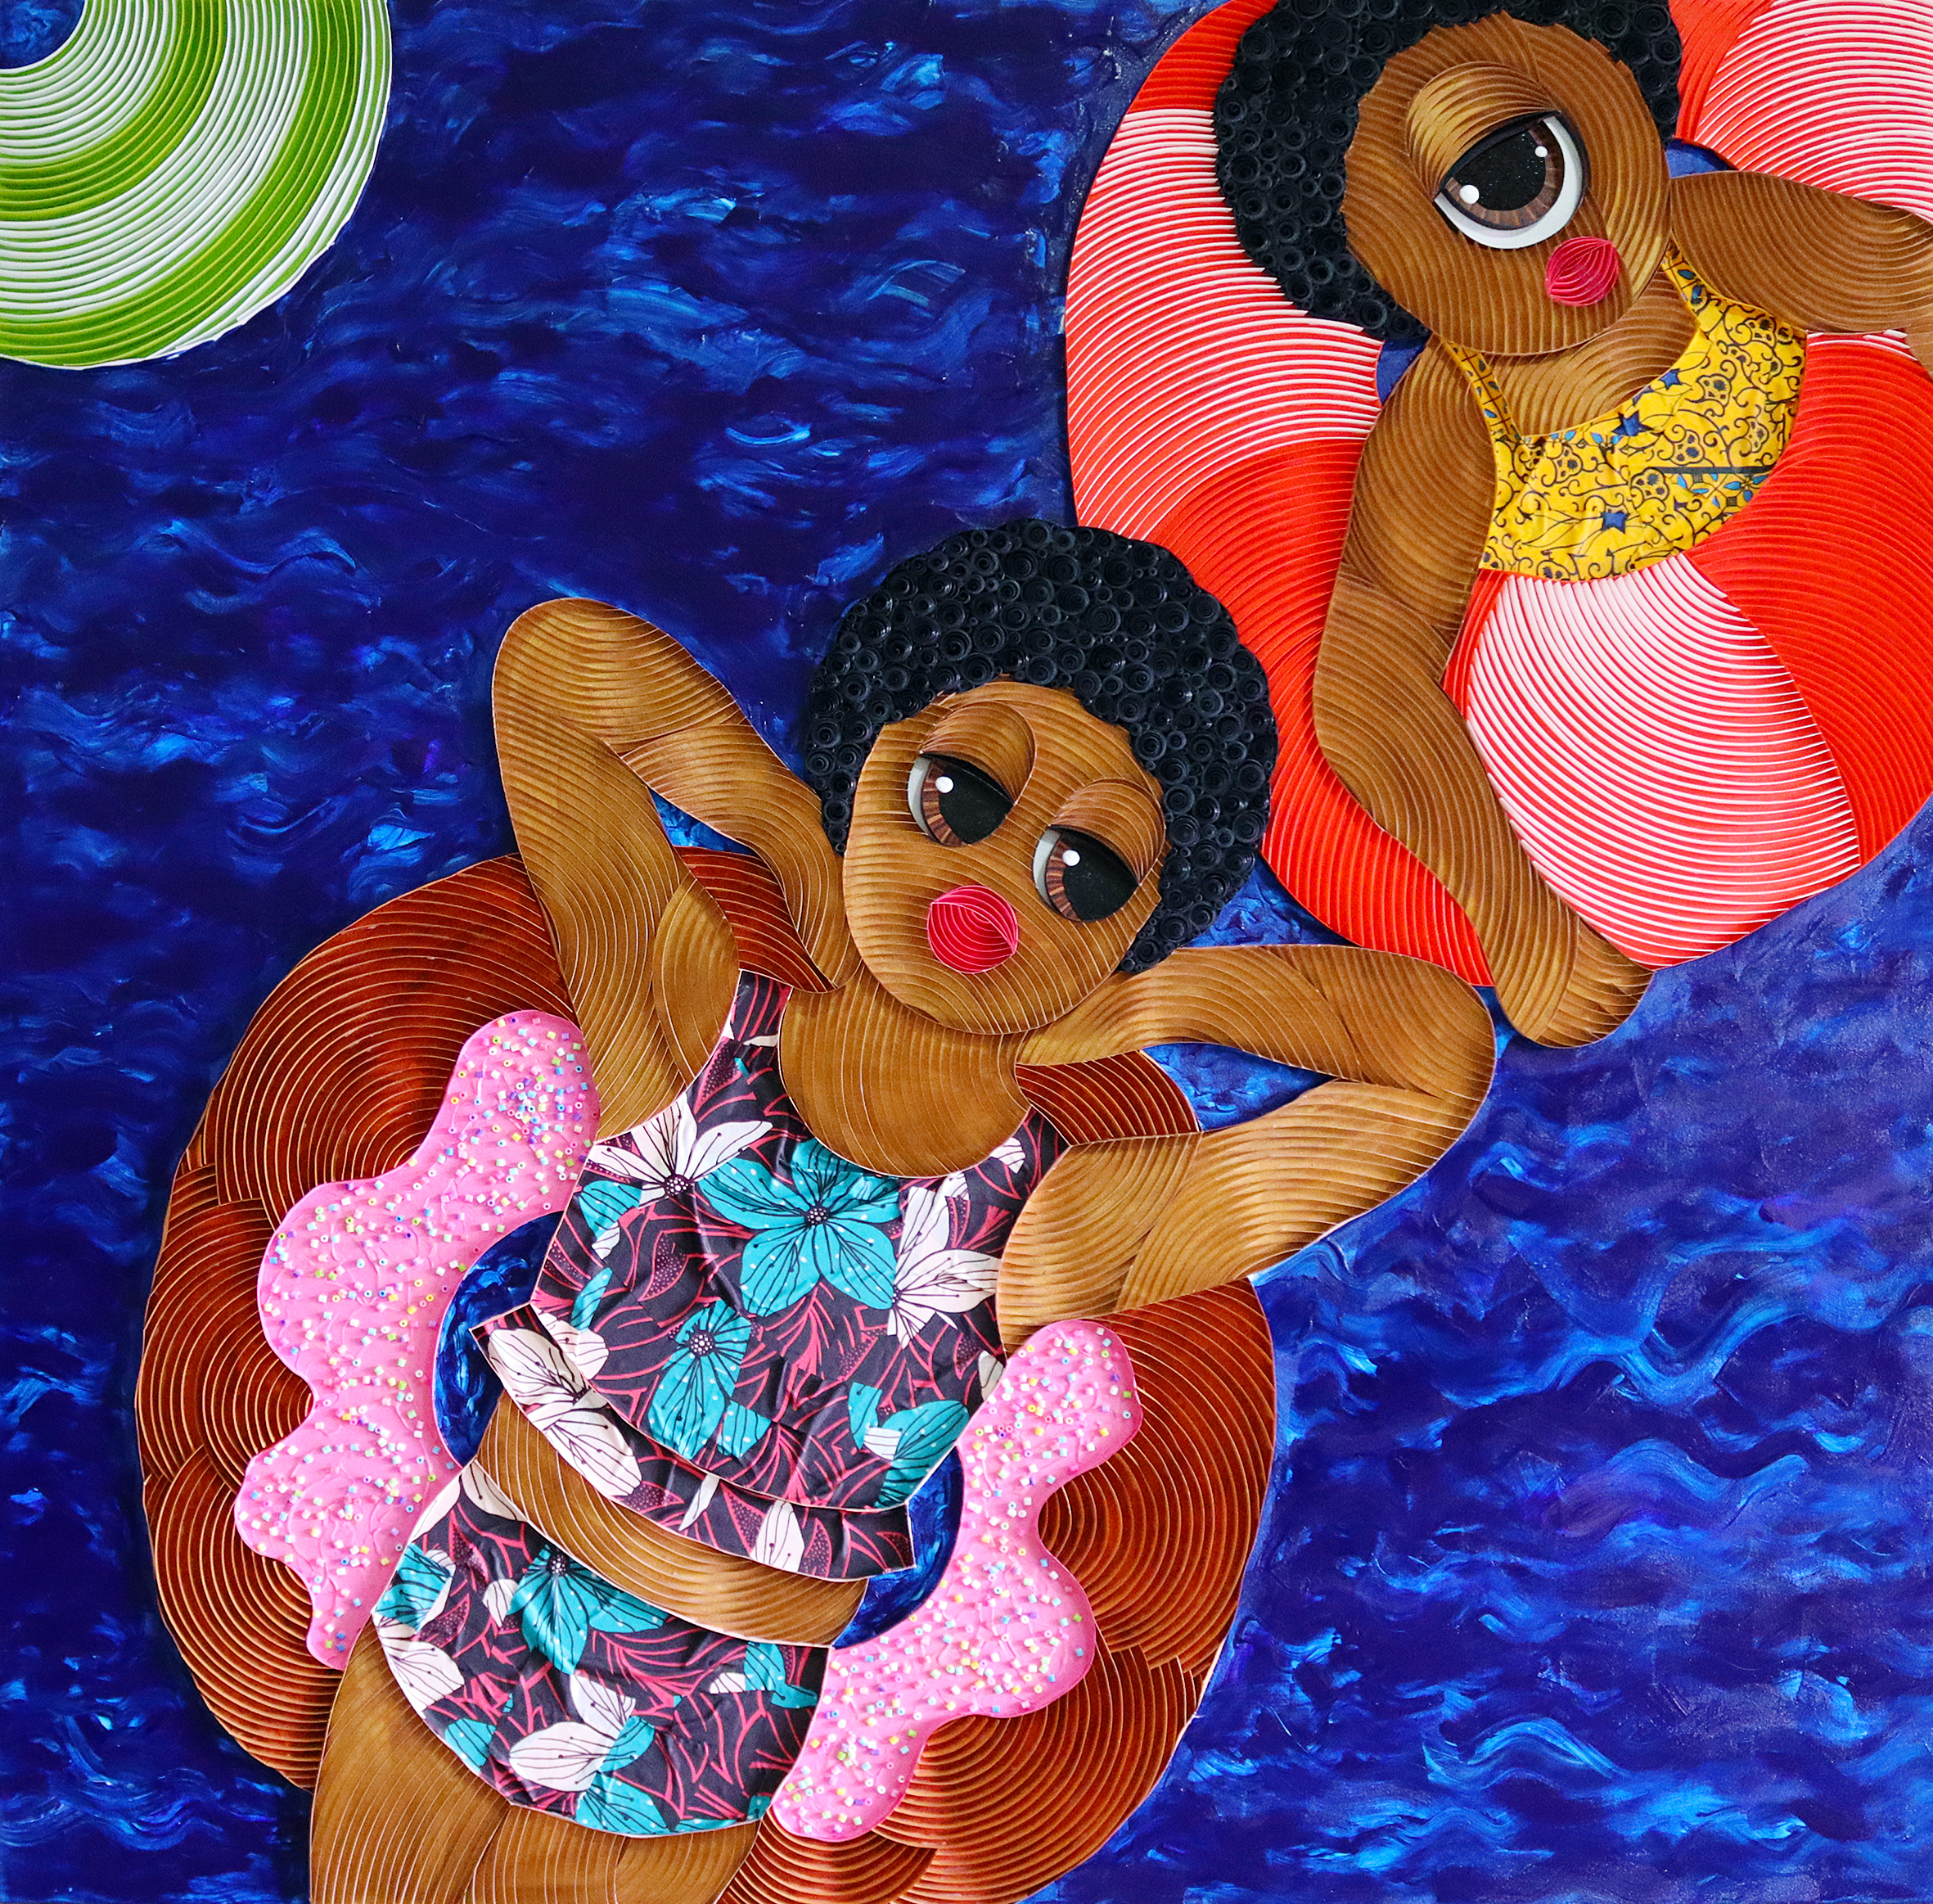 Two women float leisurely in a pool in a colorful mixed media piece by Ayobola Kekere-Ekun.